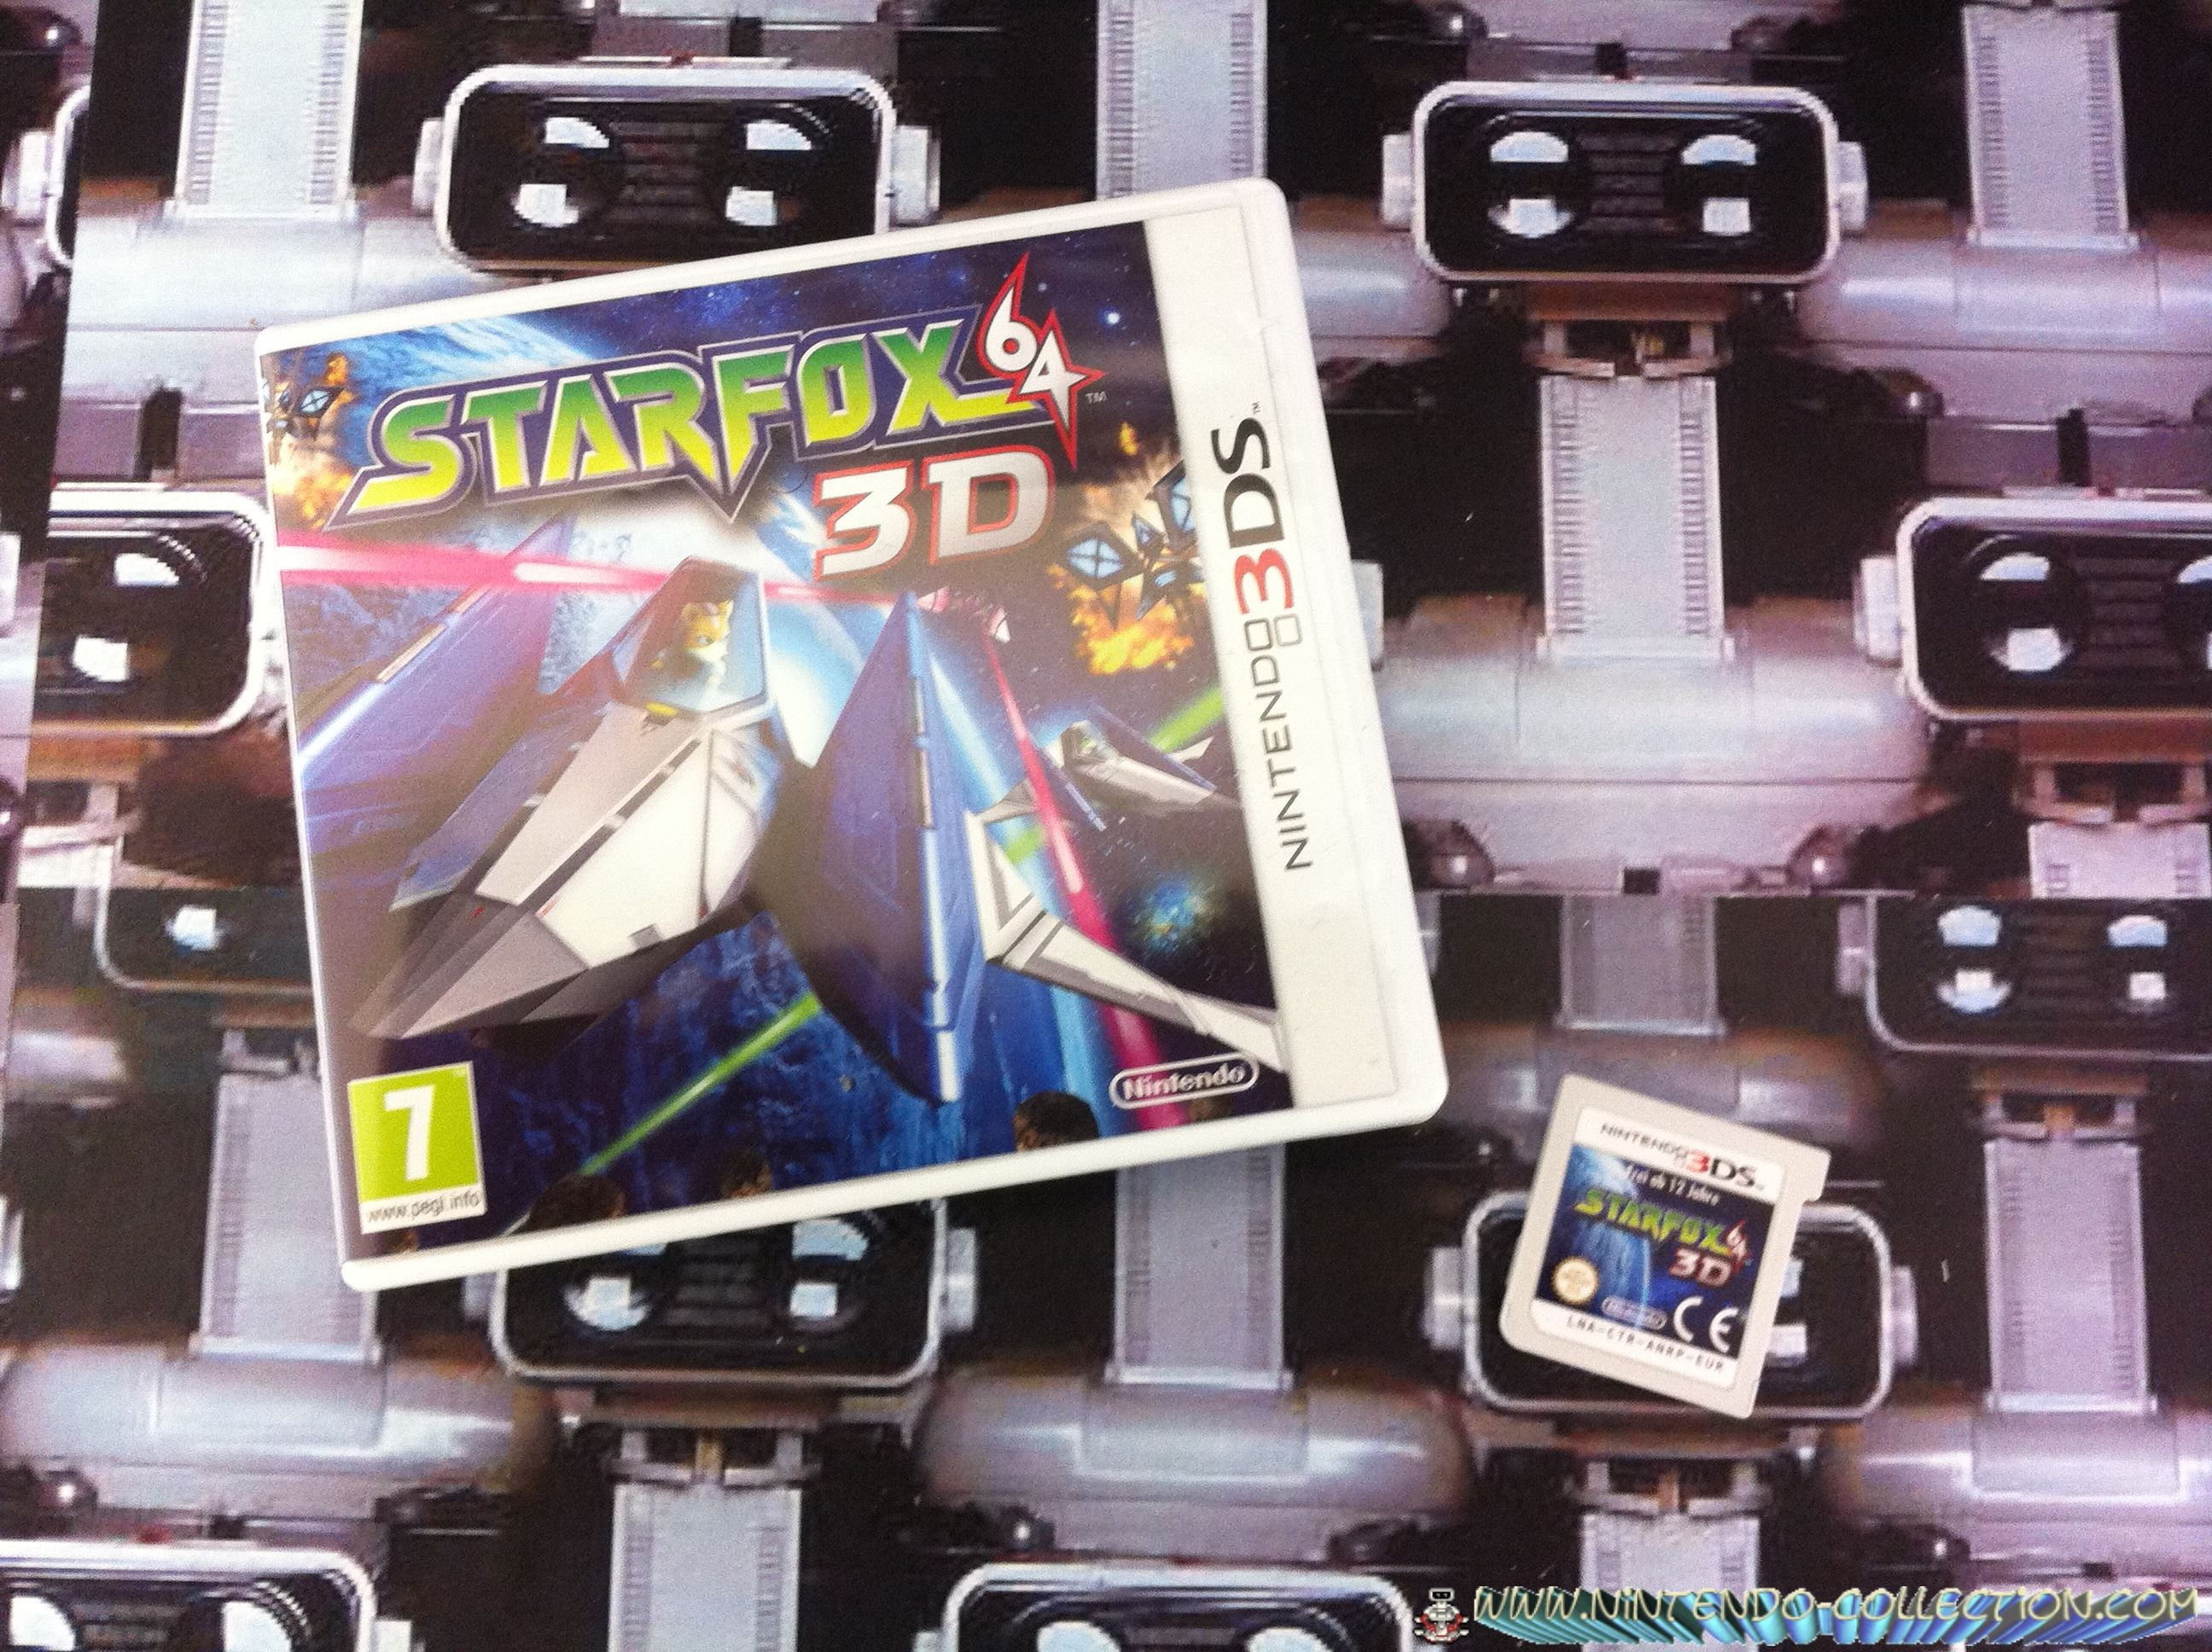 www.nintendo-collection.com - Starfox 64 3ds 3ds